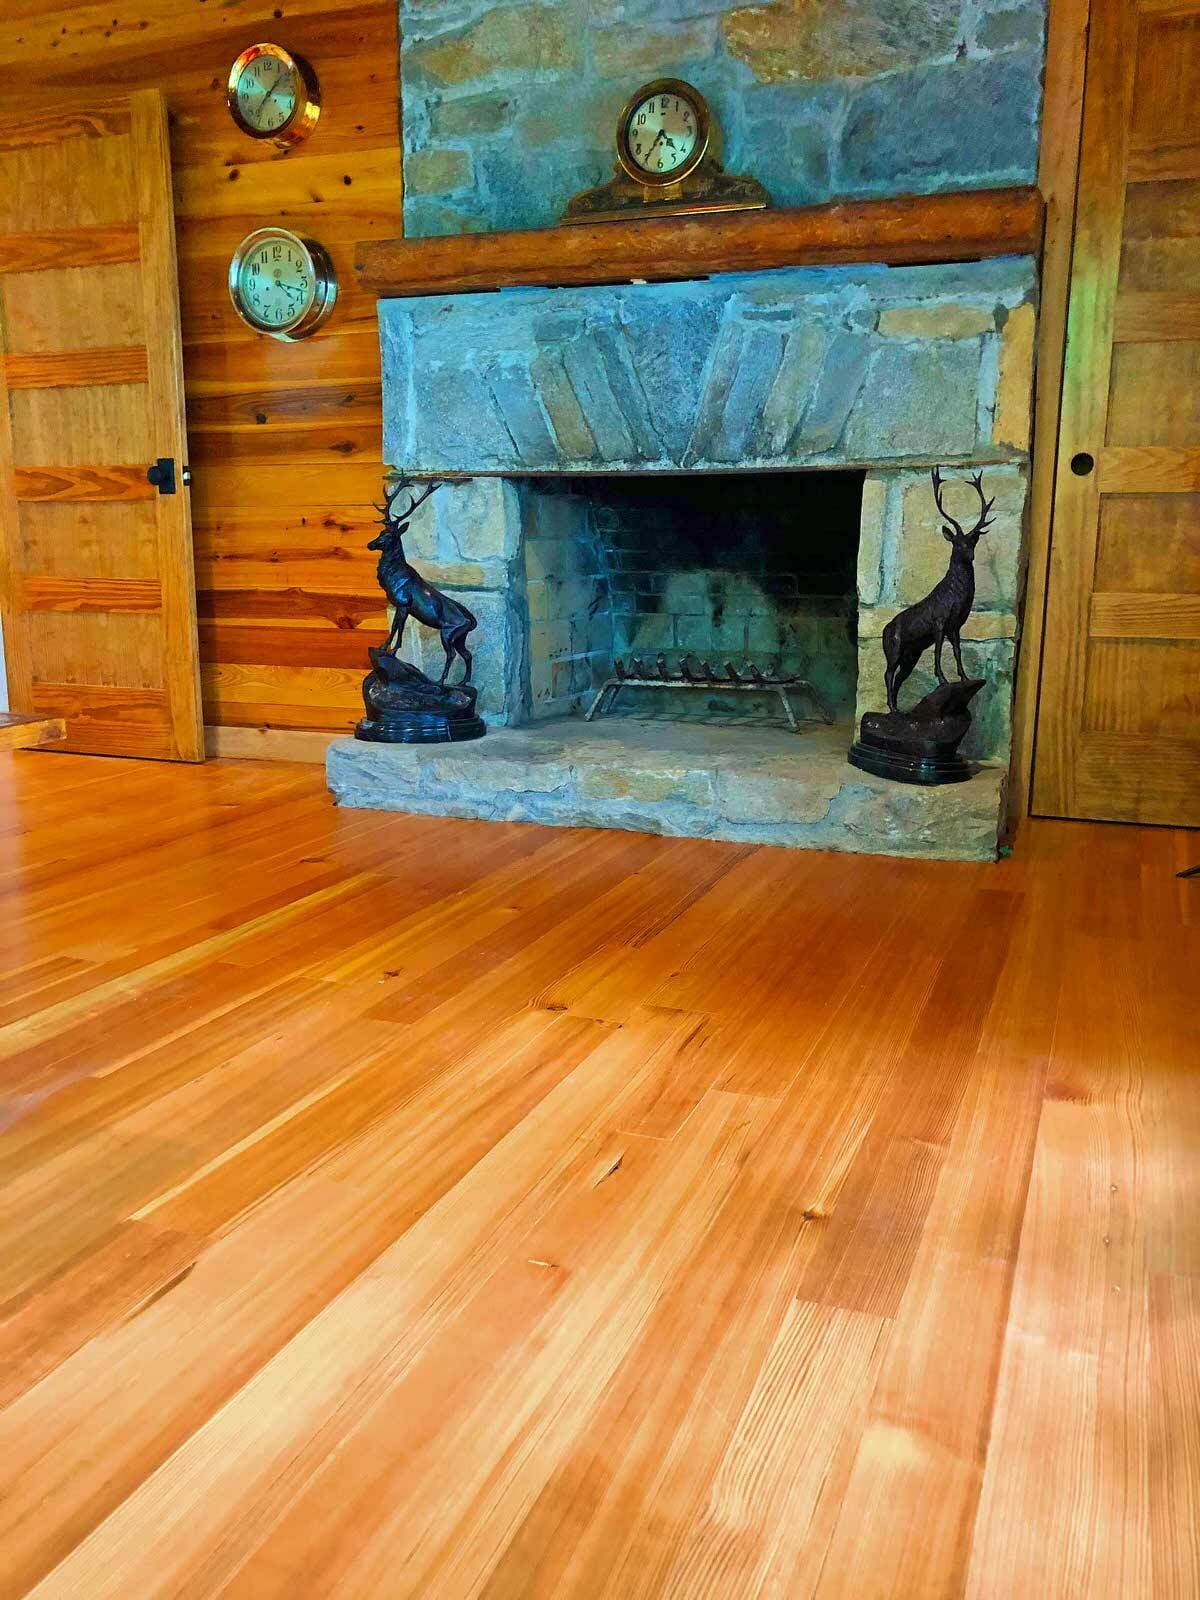 Classic old wood floors reclaimed and restored to original beauty.